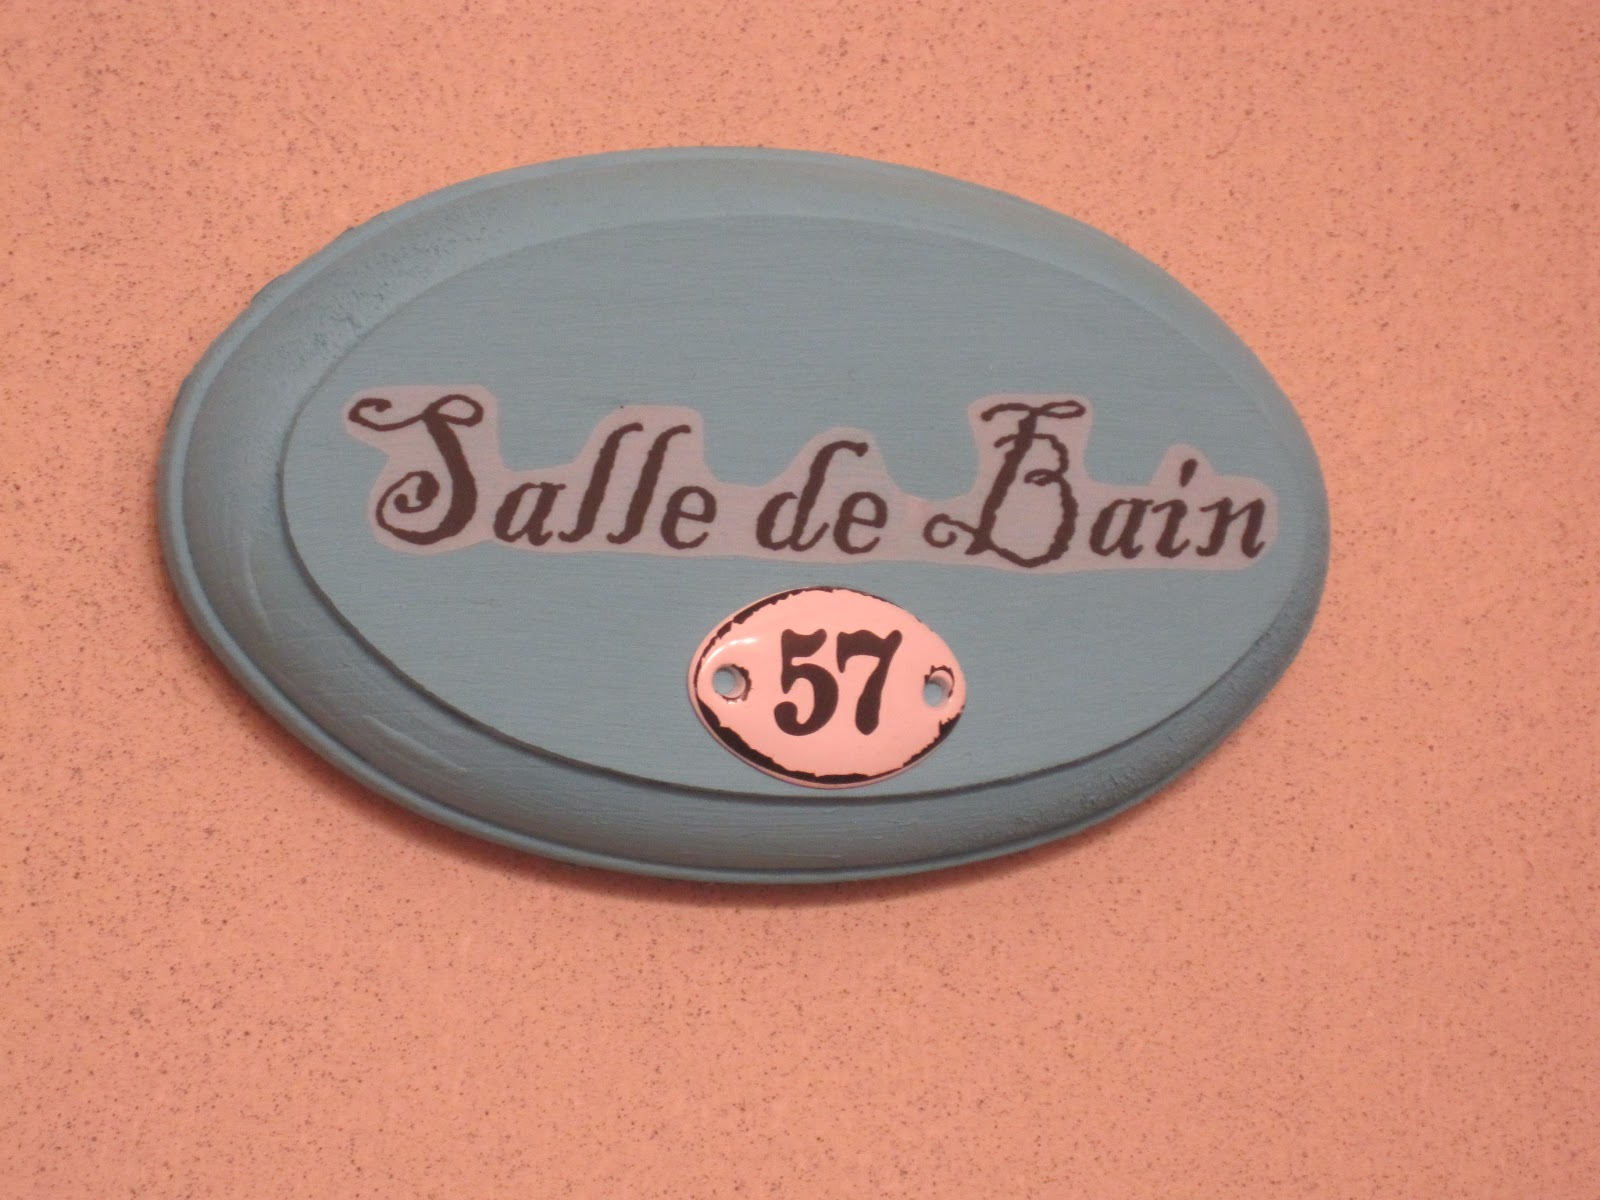 Petite salle de bain bathroom sign okio b designs for Salle de bain door sign